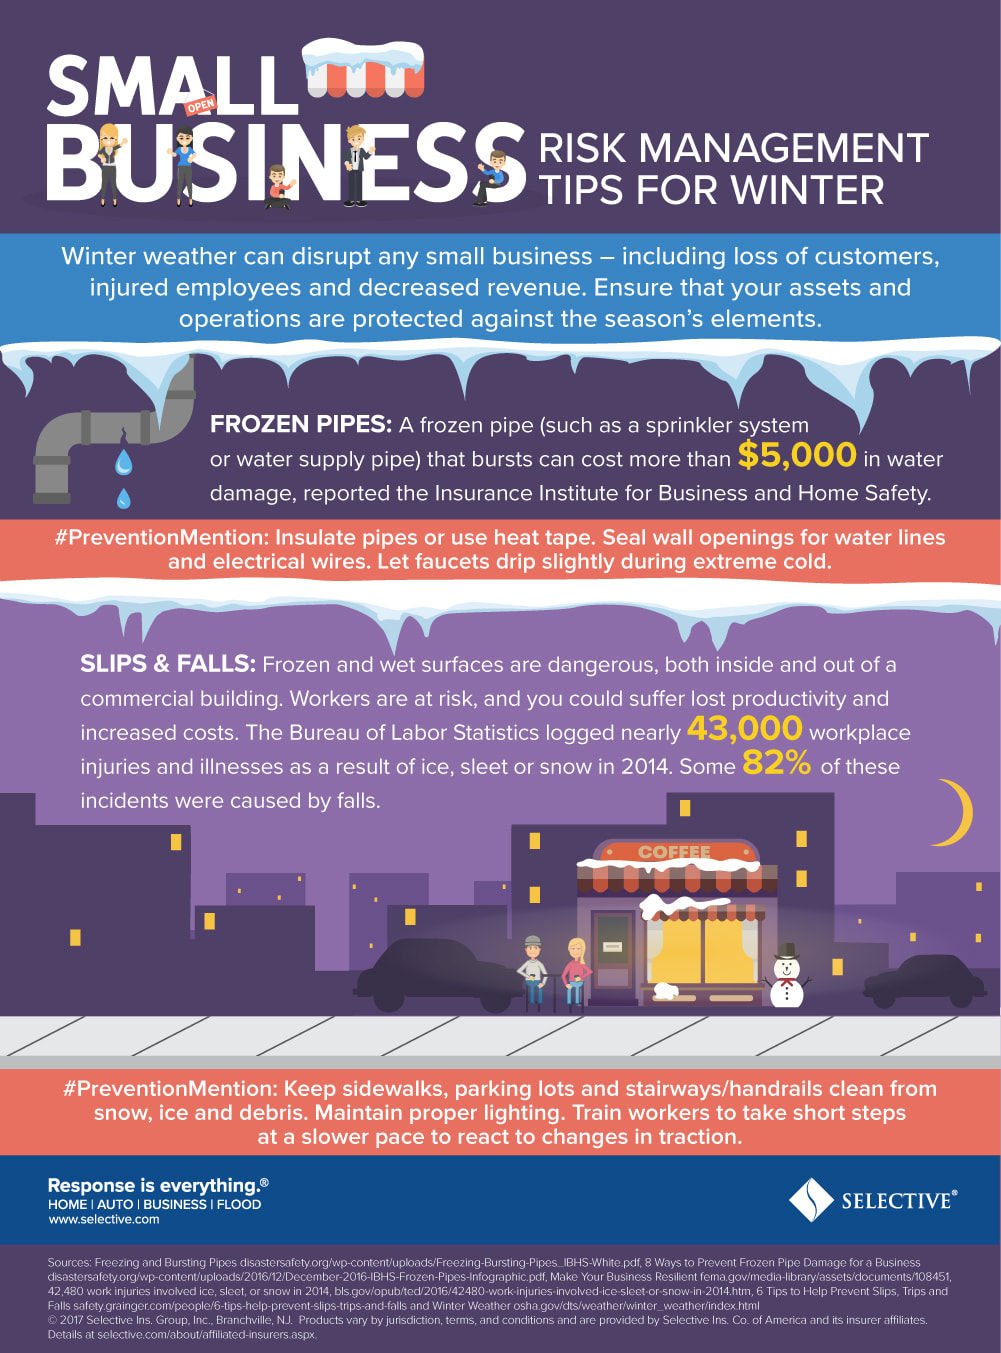 Here are a few tips to keep your workers safe and lower your risk this winter.